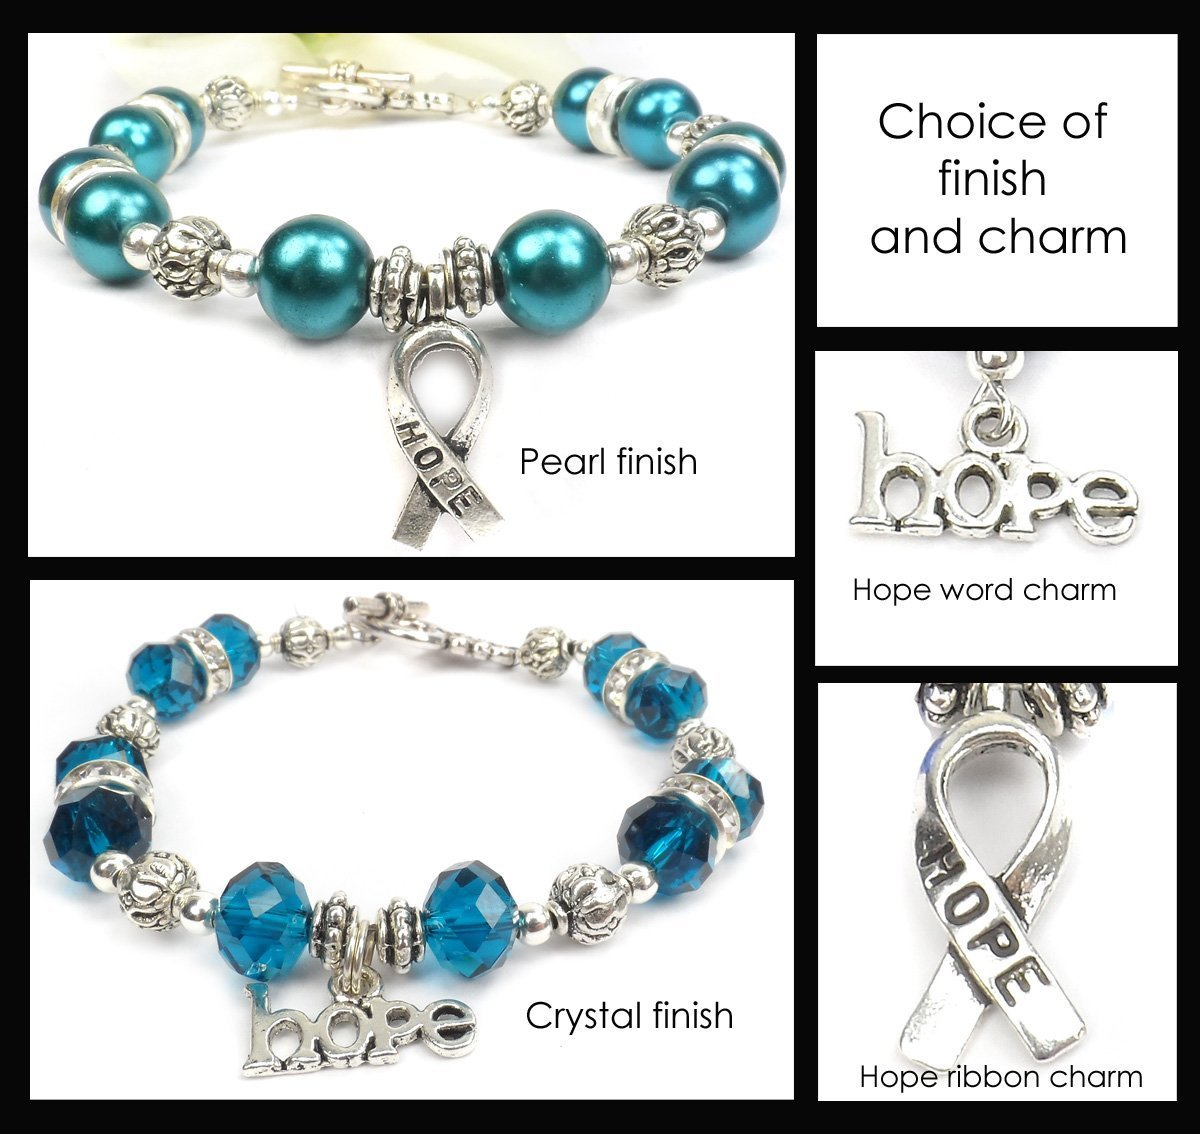 polycystic bullying scleroderma ocd kidney disease ovarian fragile bracelet anti x cancer awareness pos pin